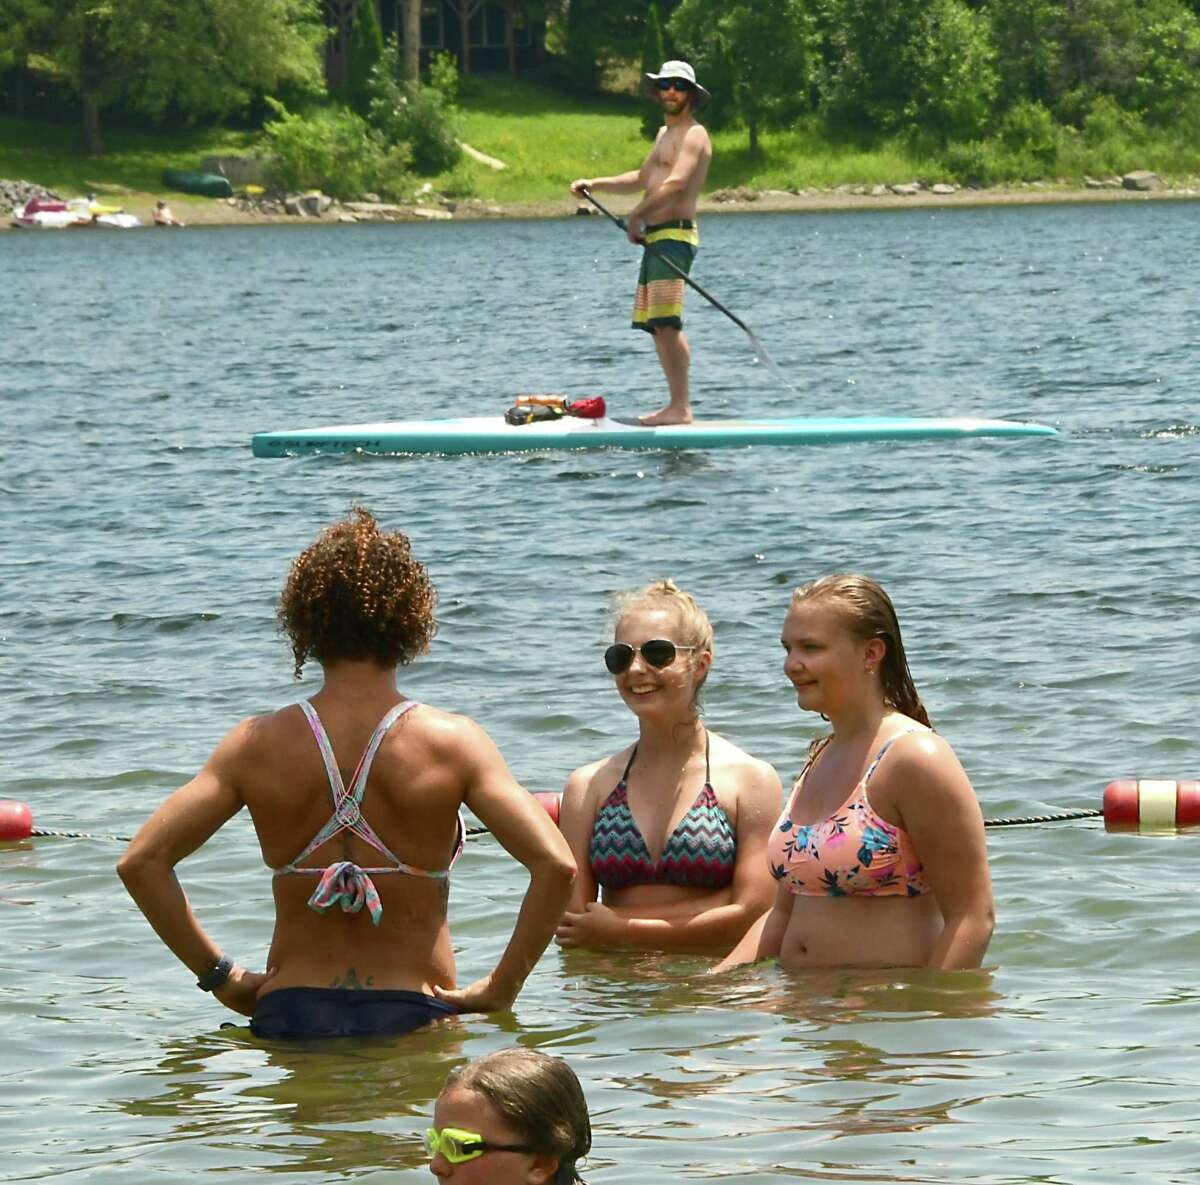 A man goes by the beach on a stand-up paddle board at Thompson's Lake Campground on Friday, July 5, 2019, East Berne, N.Y. (Lori Van Buren/Times Union)